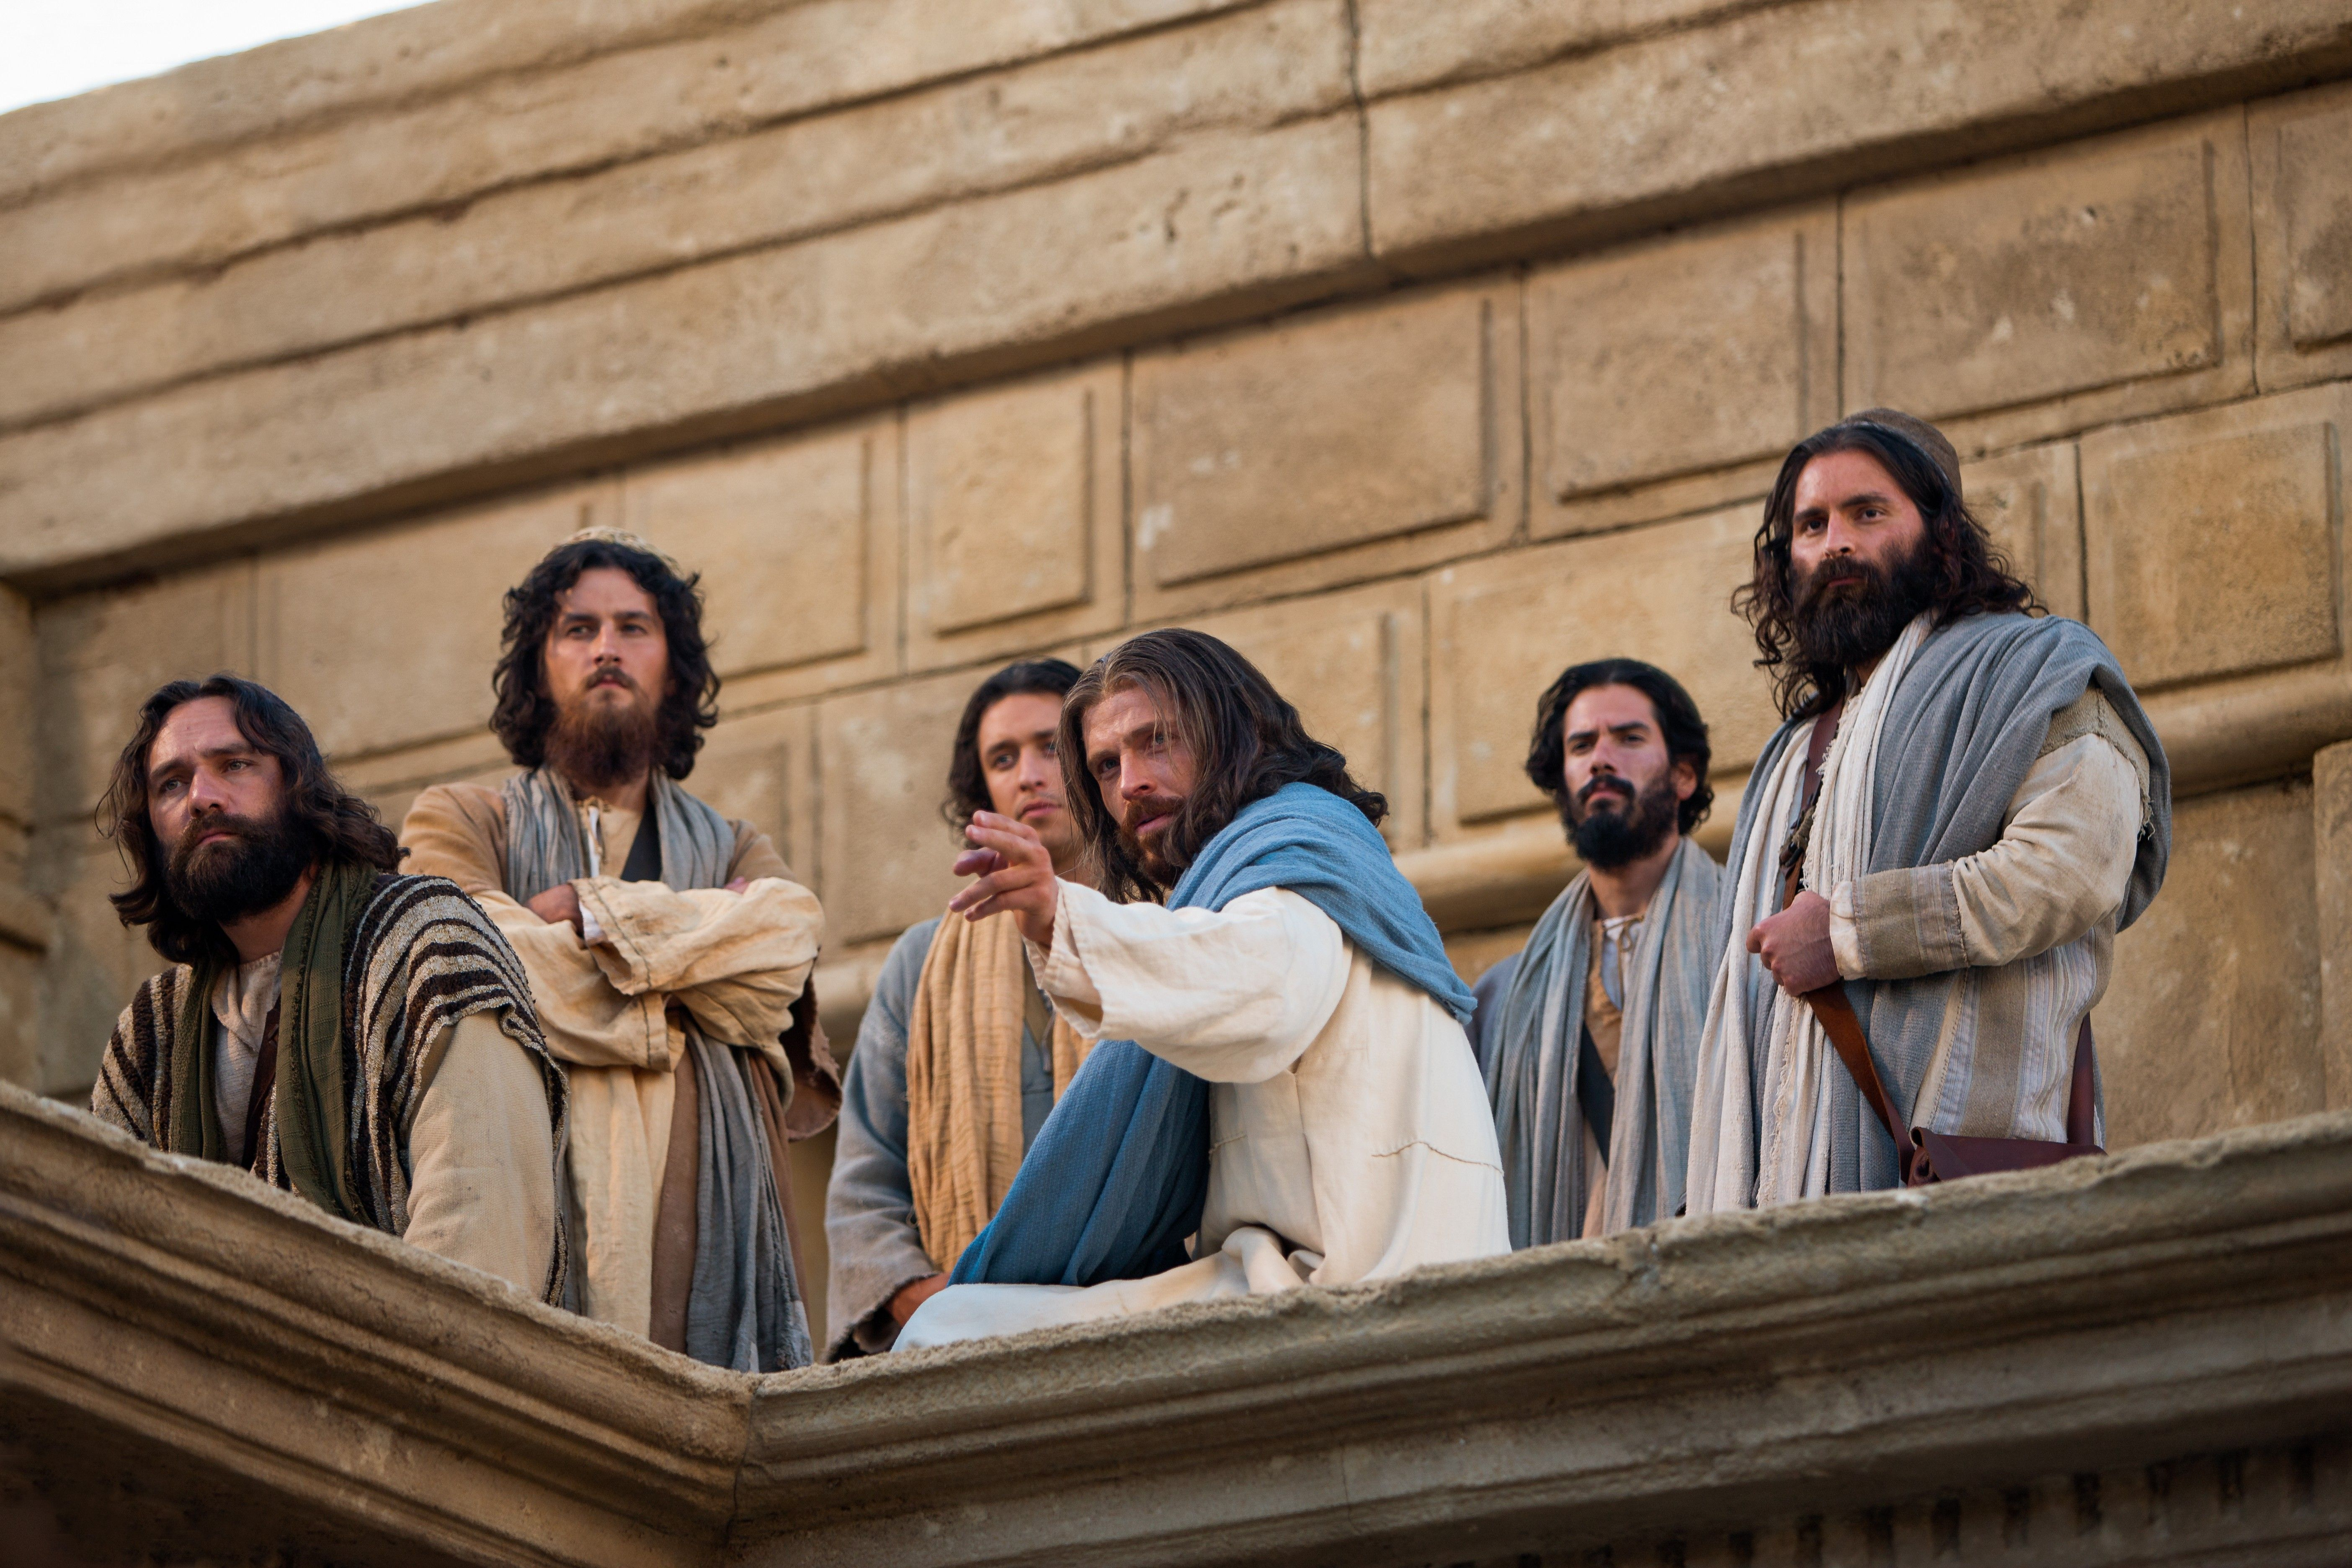 Jesus at the temple teaches His Apostles about the widow's mites.